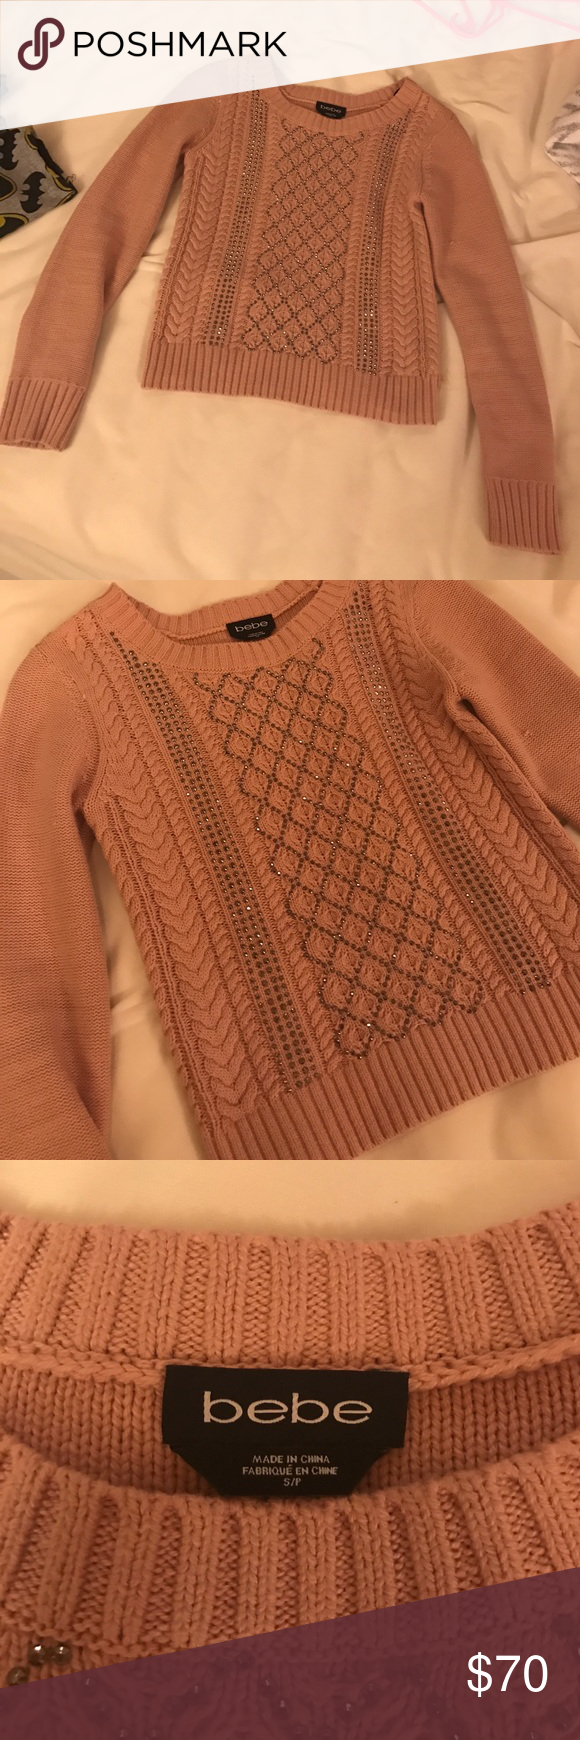 Brand new Bebe embellished sweater Beautiful rose colored cable knit sweater with crystal beading on the front, size small, falls just at the hips, brand new without tags bebe Sweaters Crew & Scoop Necks